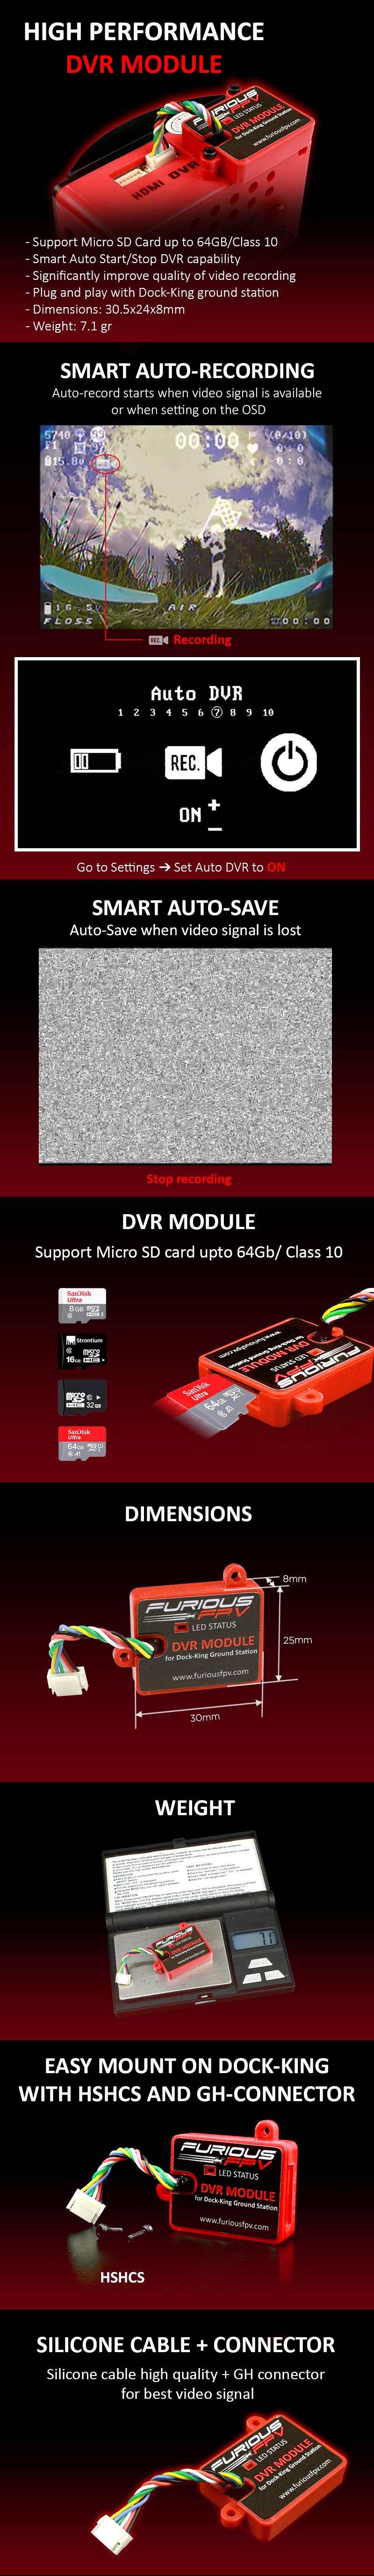 FuriousFpv Dock King DVR Module